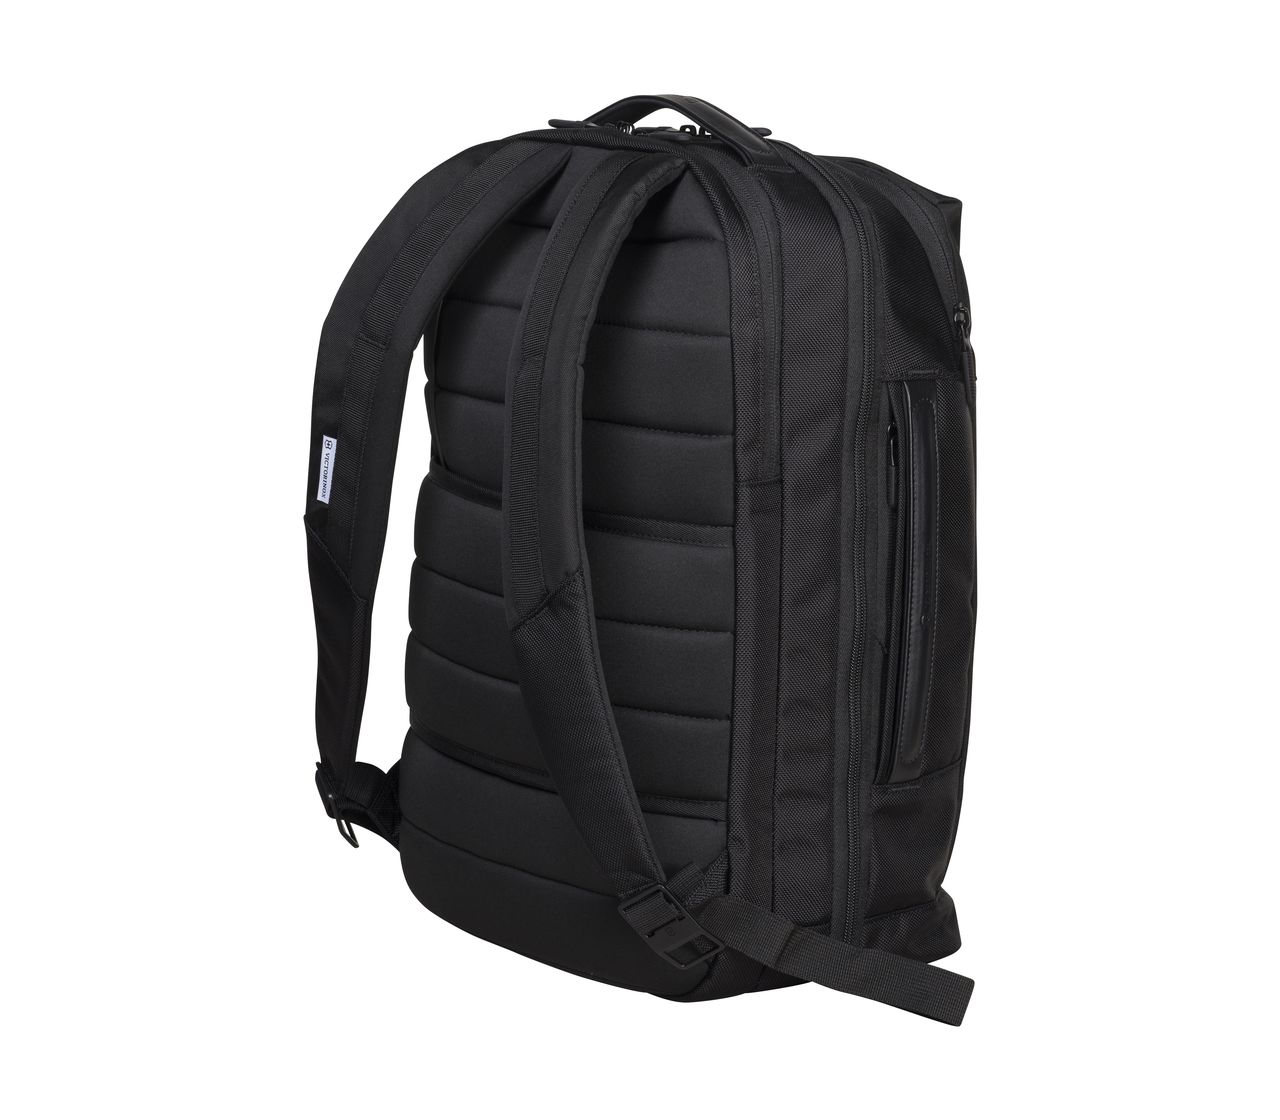 Deluxe Travel Laptop Backpack-602155